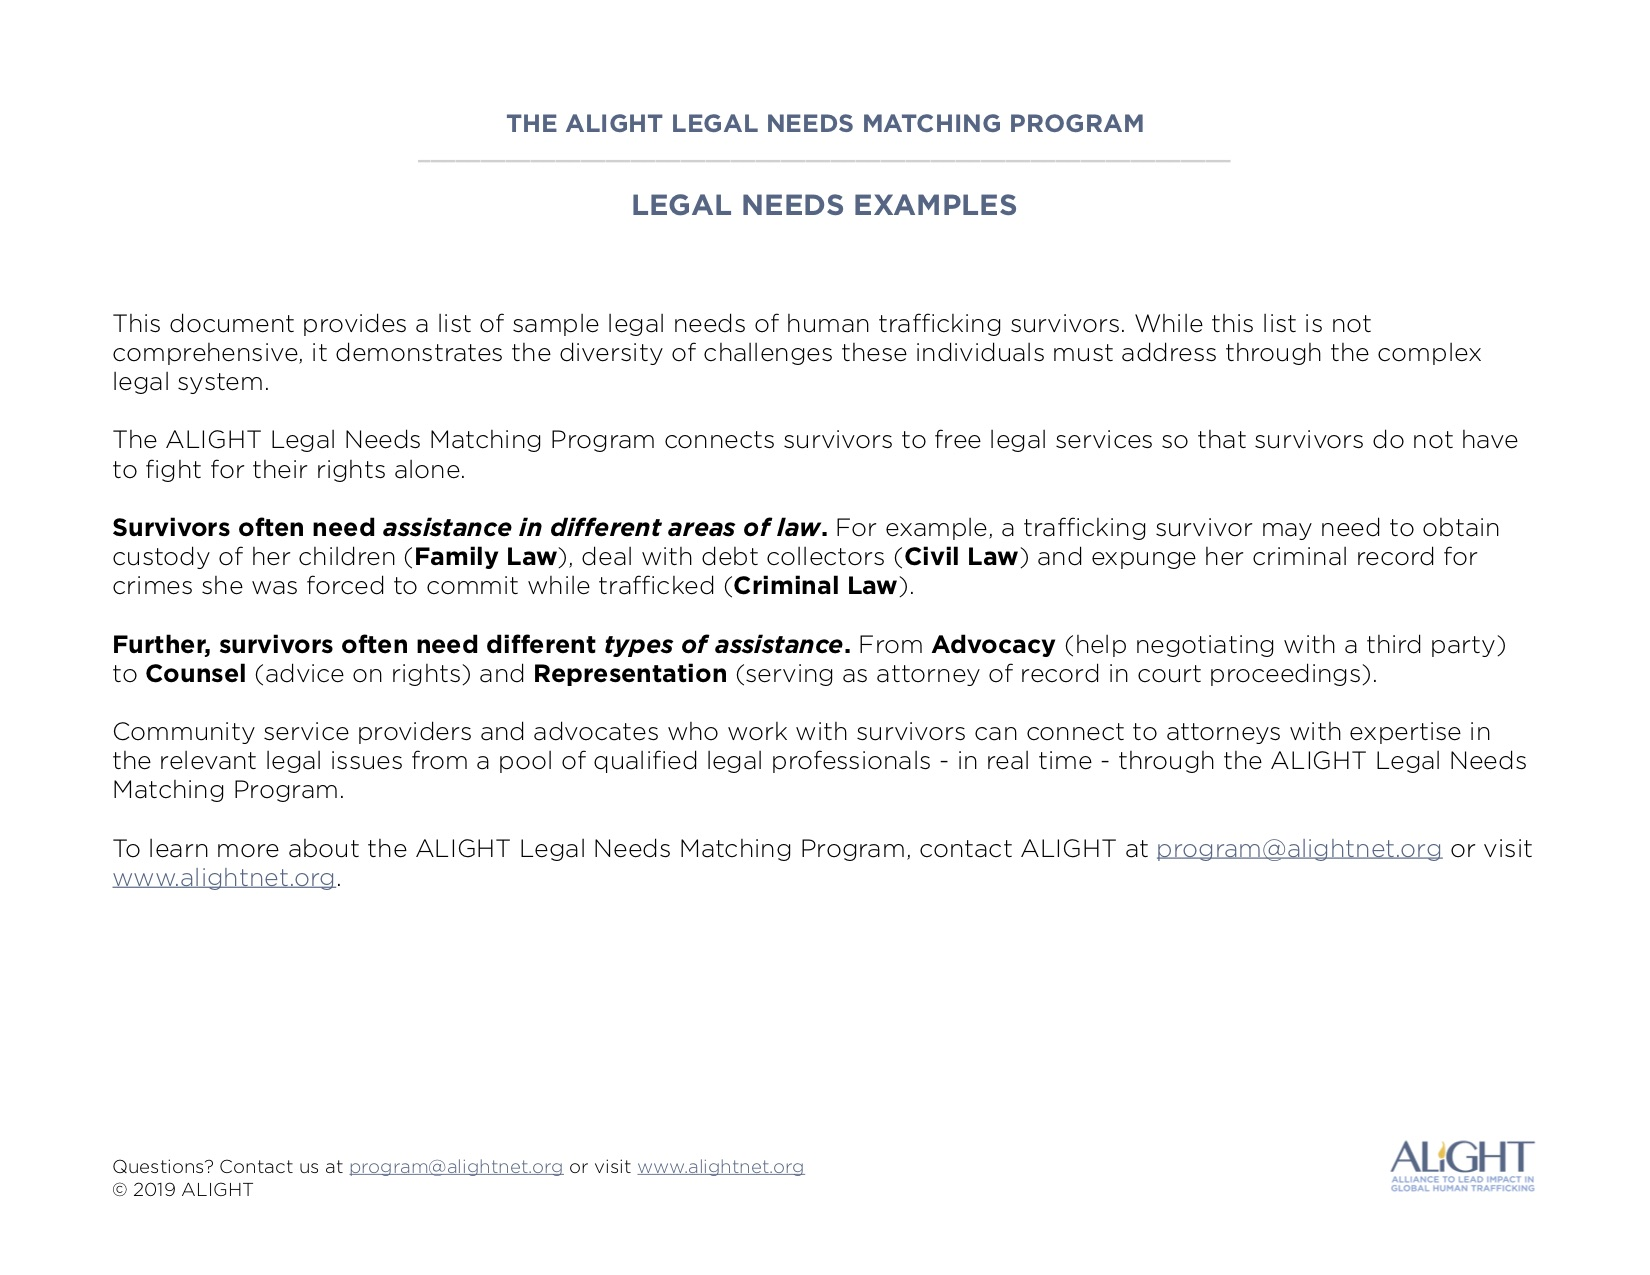 Legal Needs Examples